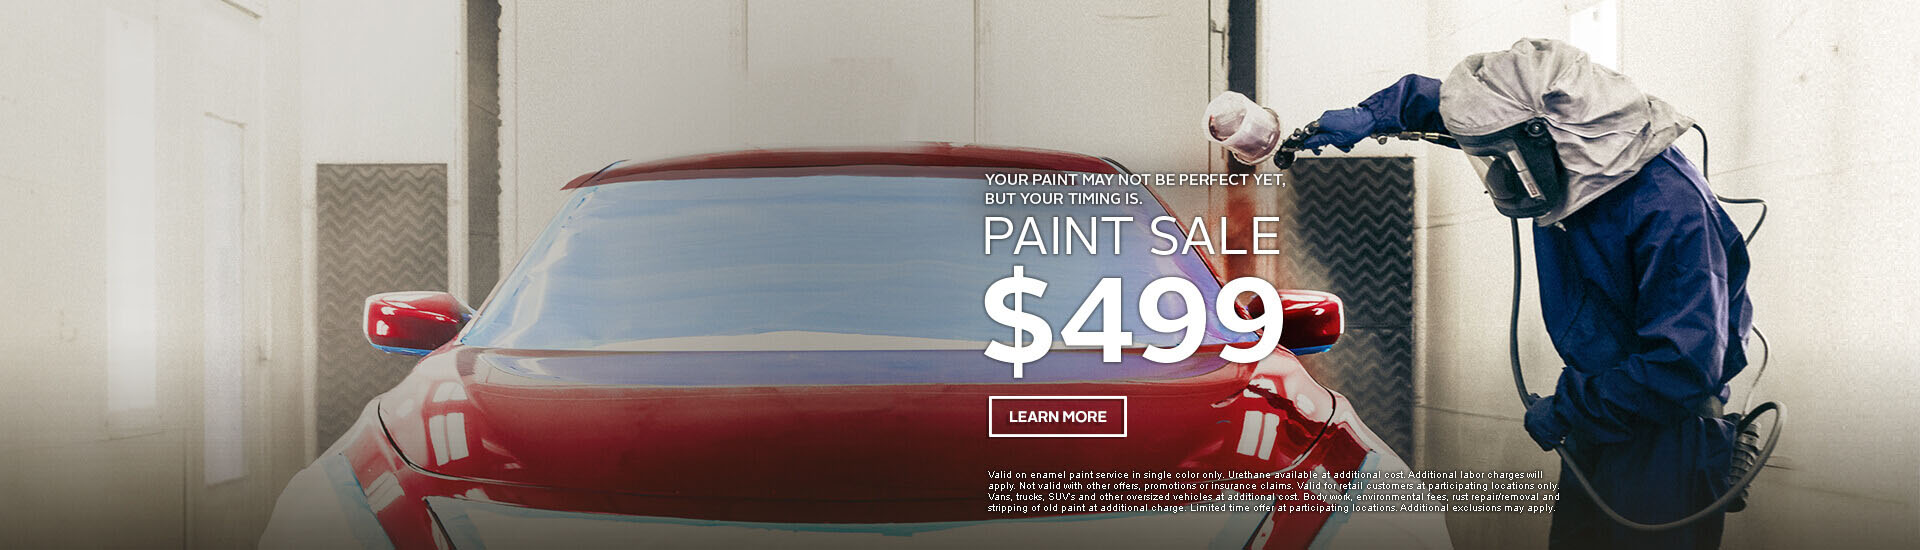 Maaco: Paint Sale starting at $499, click Learn More for further details.